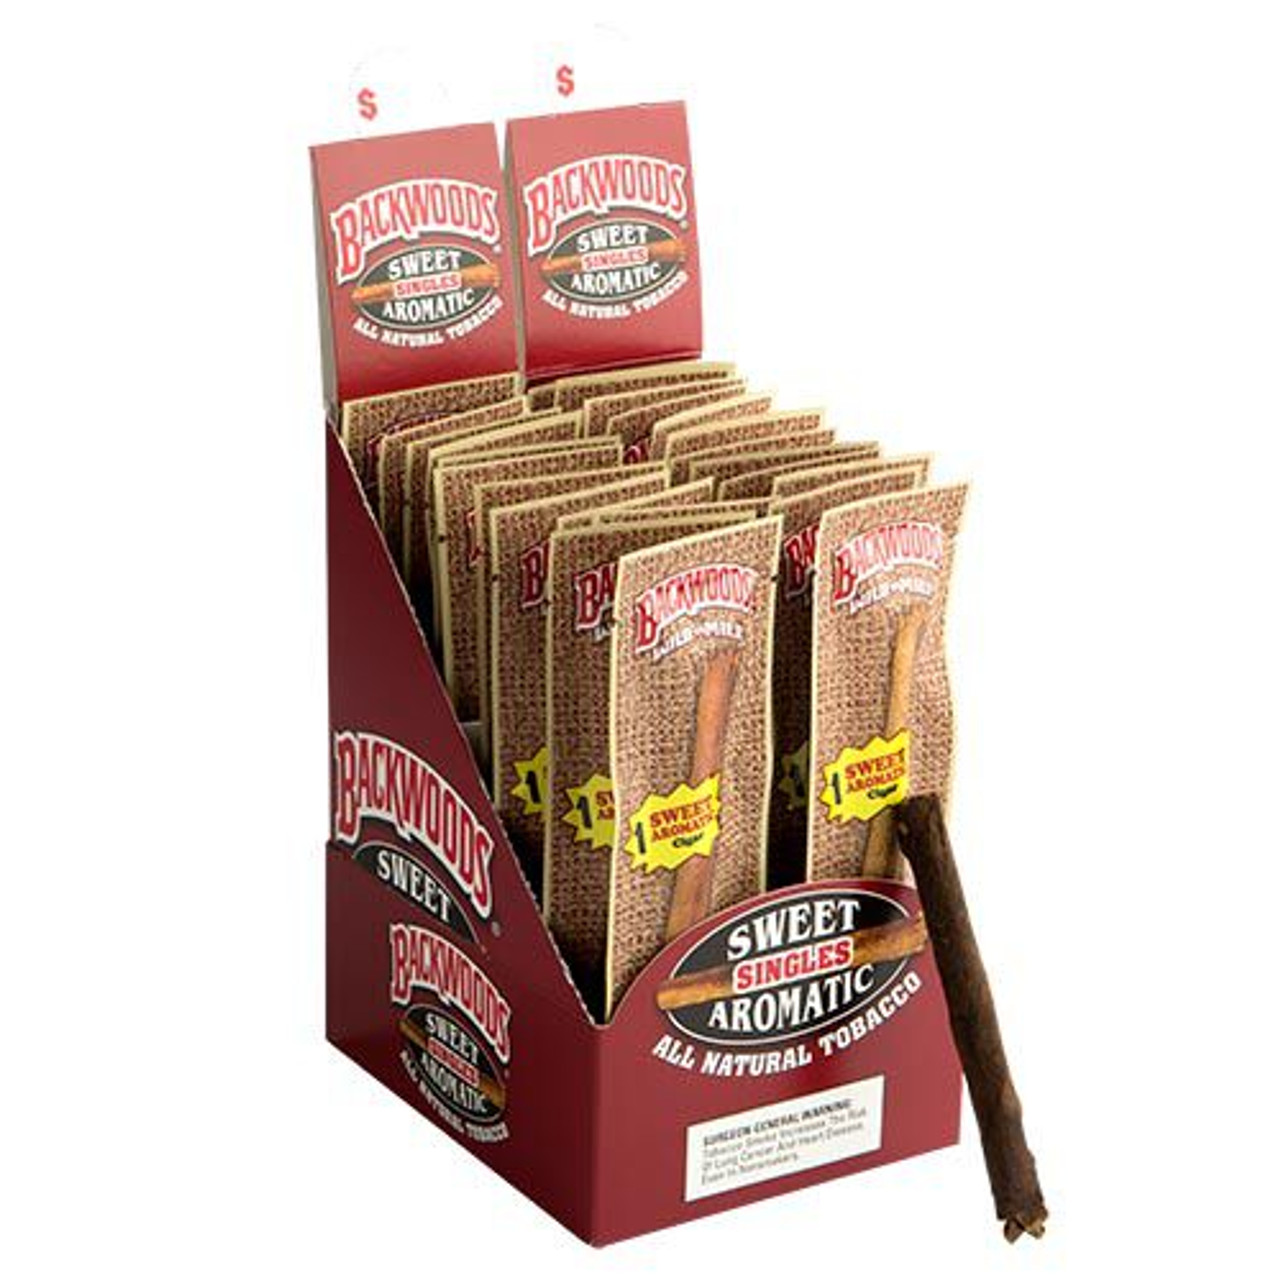 Backwoods Cigars Sweet Aromatic Cigars - 4.5 x 32 (Box of 24)